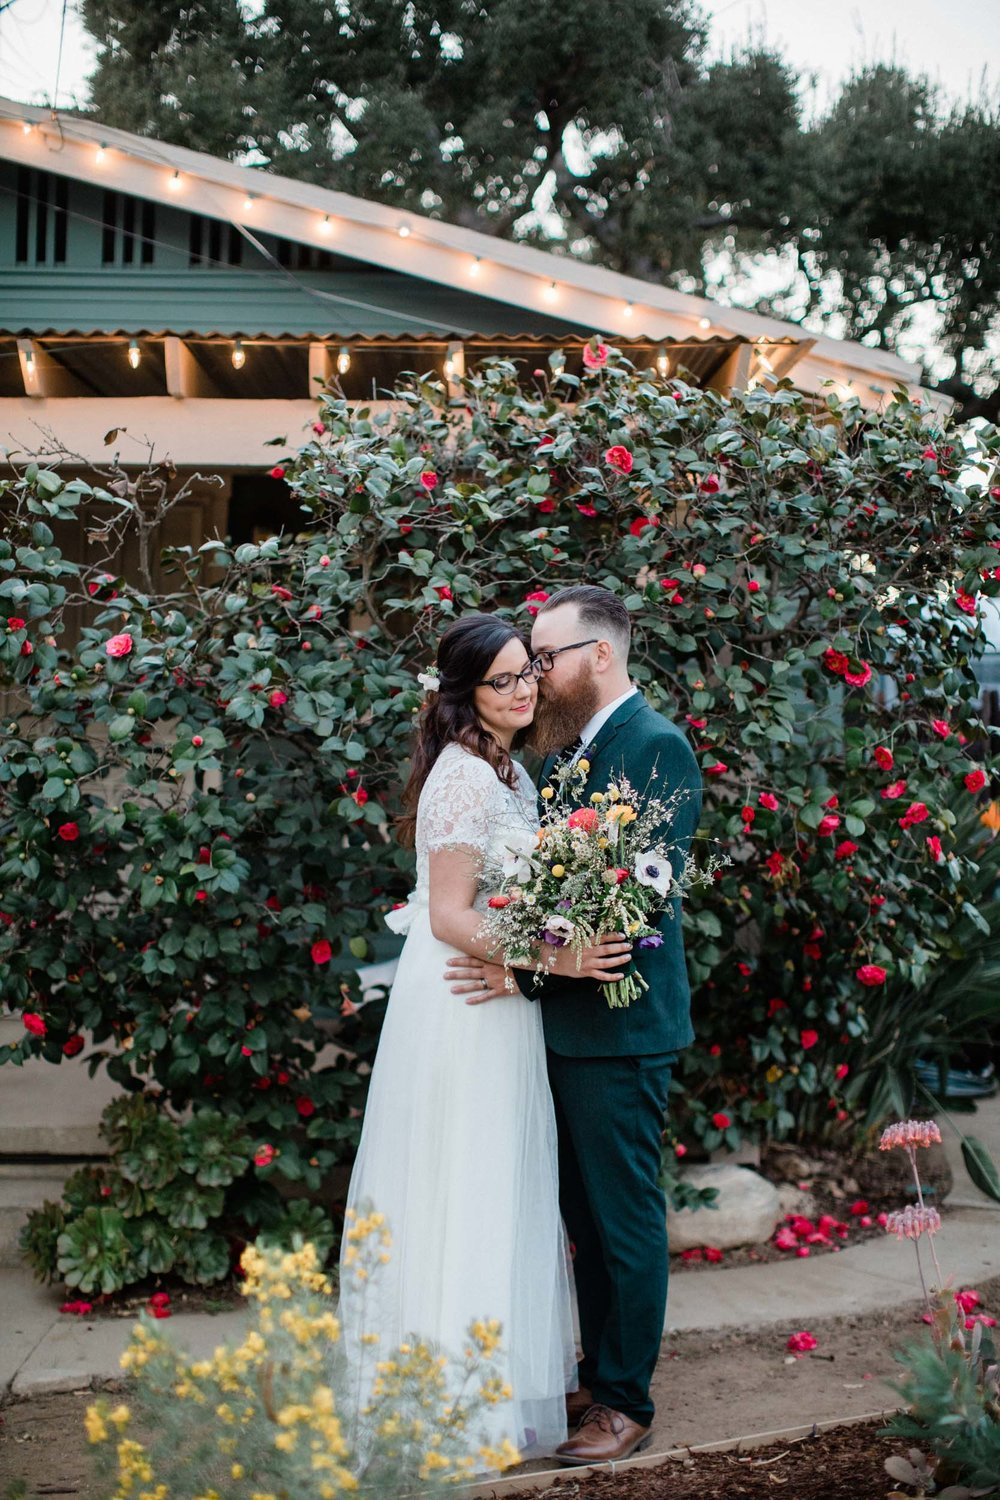 BKM-Photography-Highland-Park-Los-Angeles-Backyard-DIY-Wedding-0111.jpg